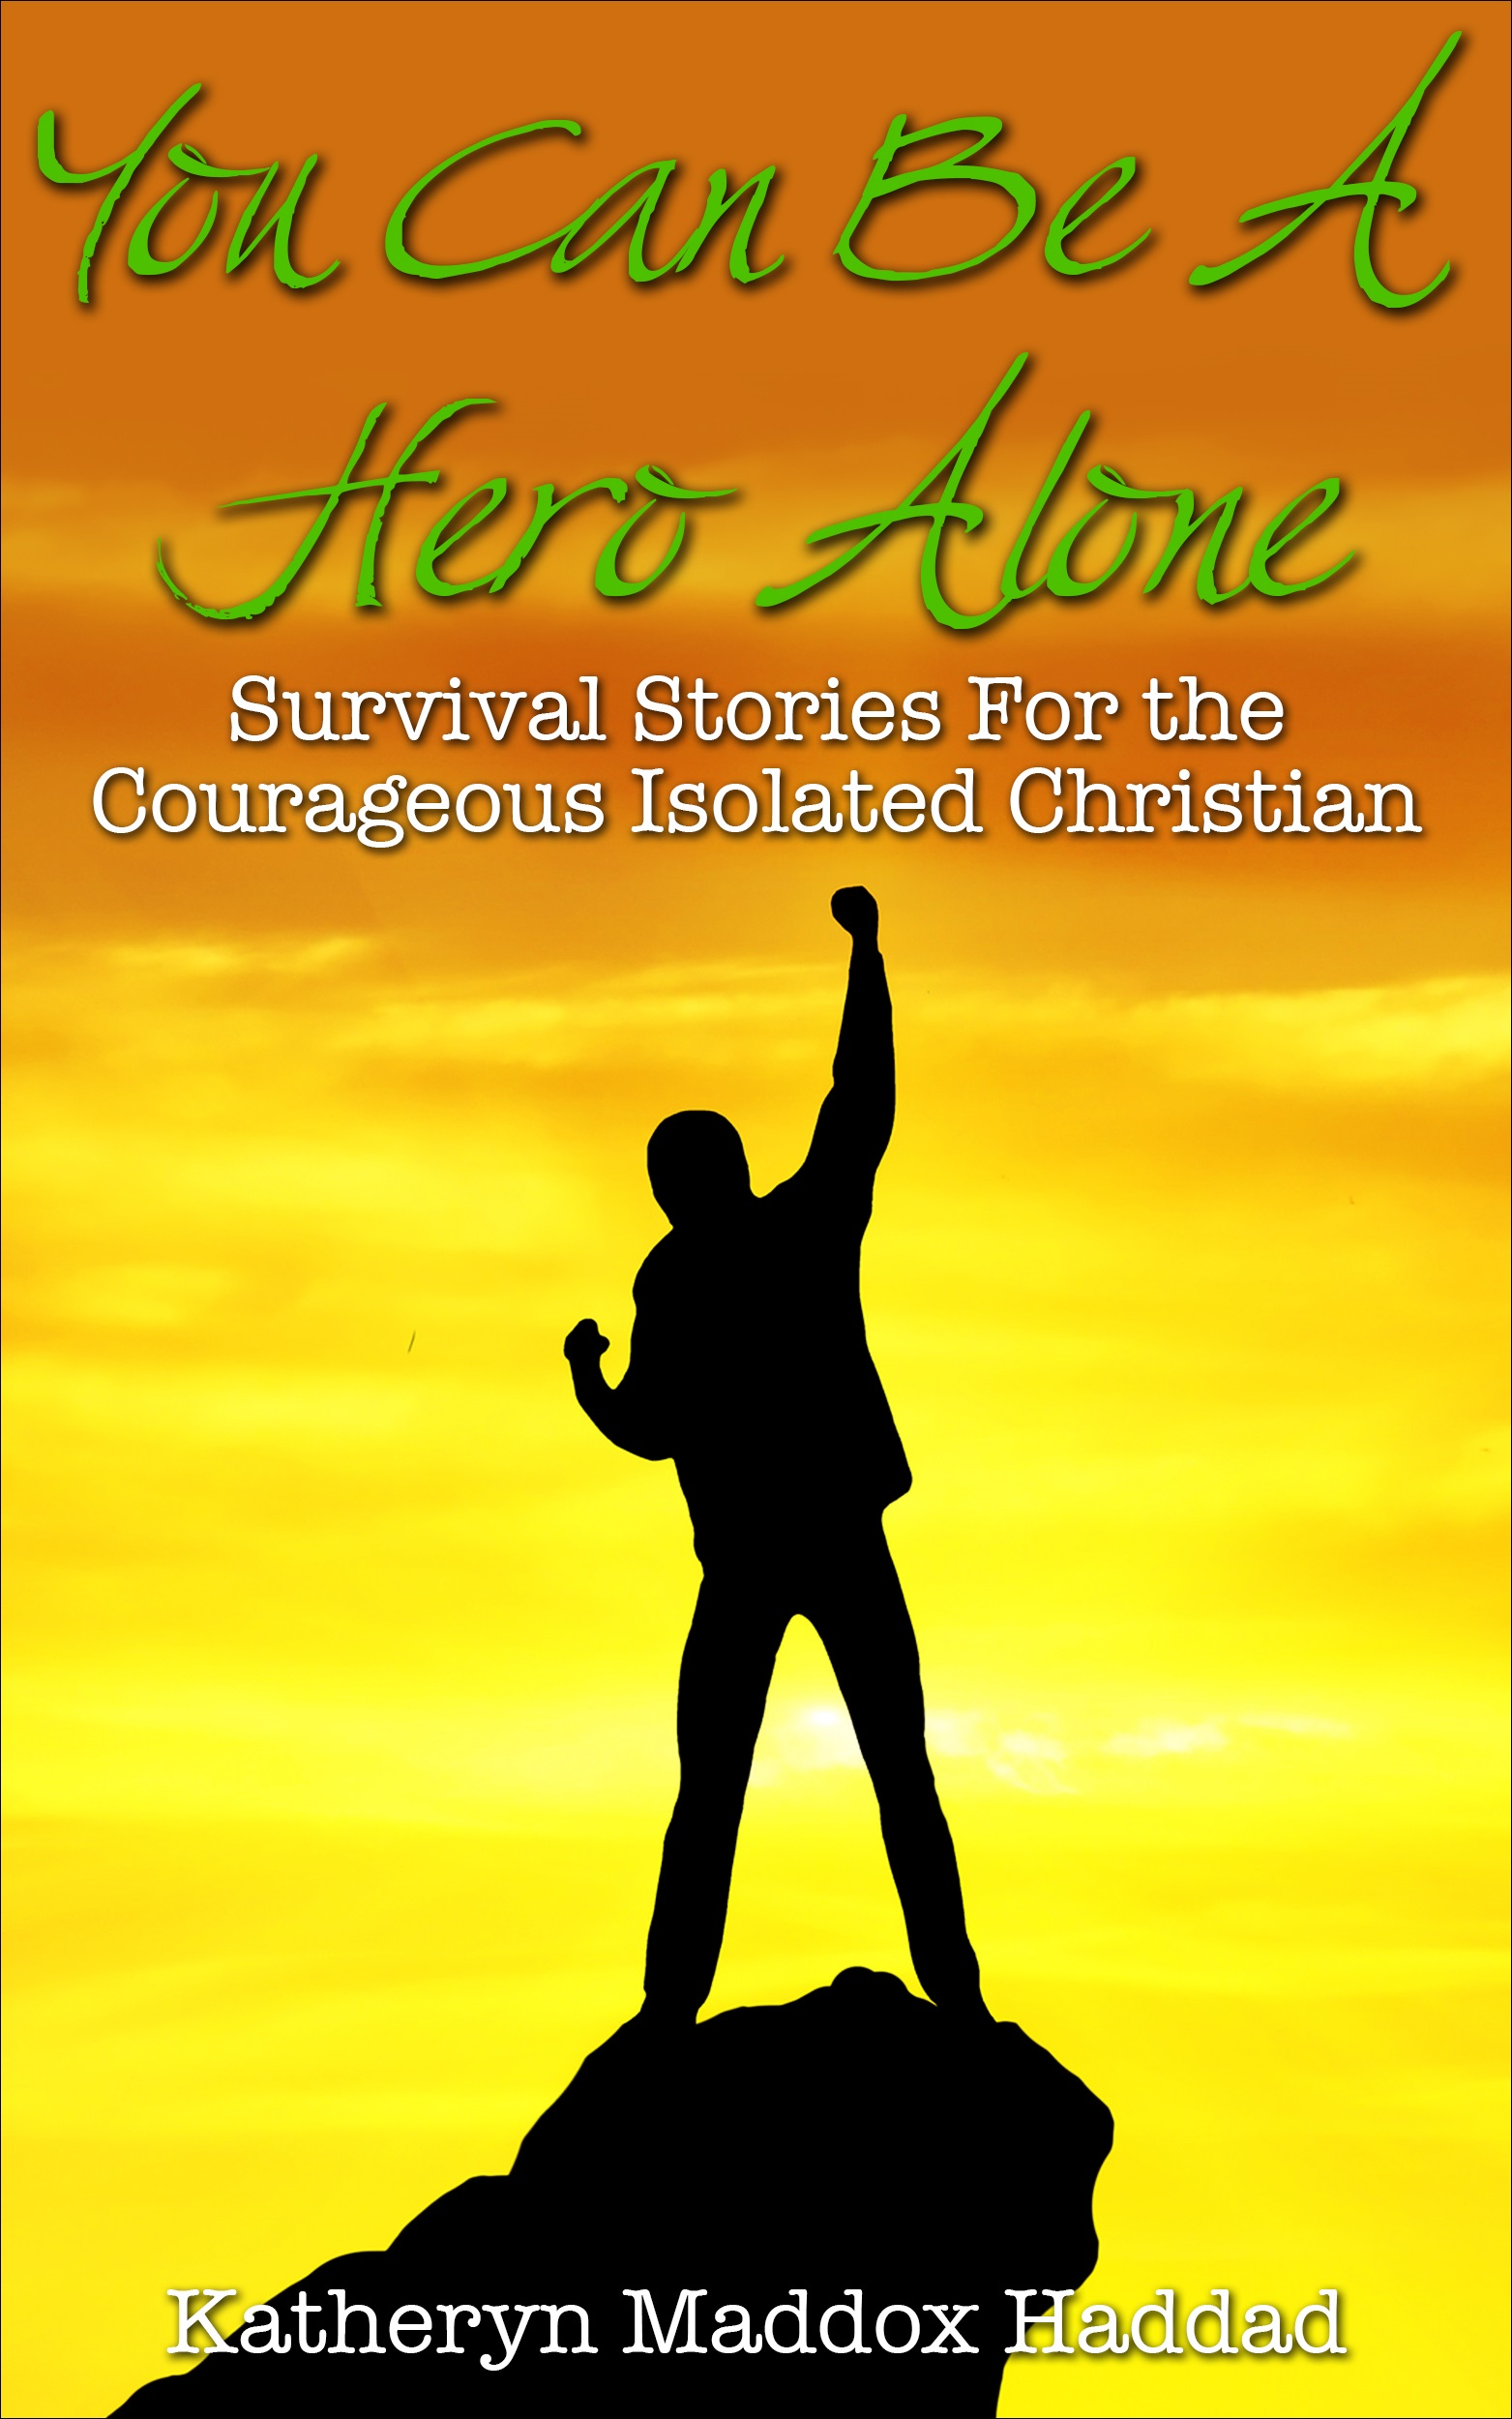 00-Heroes-Alone-COVER-KINDLE